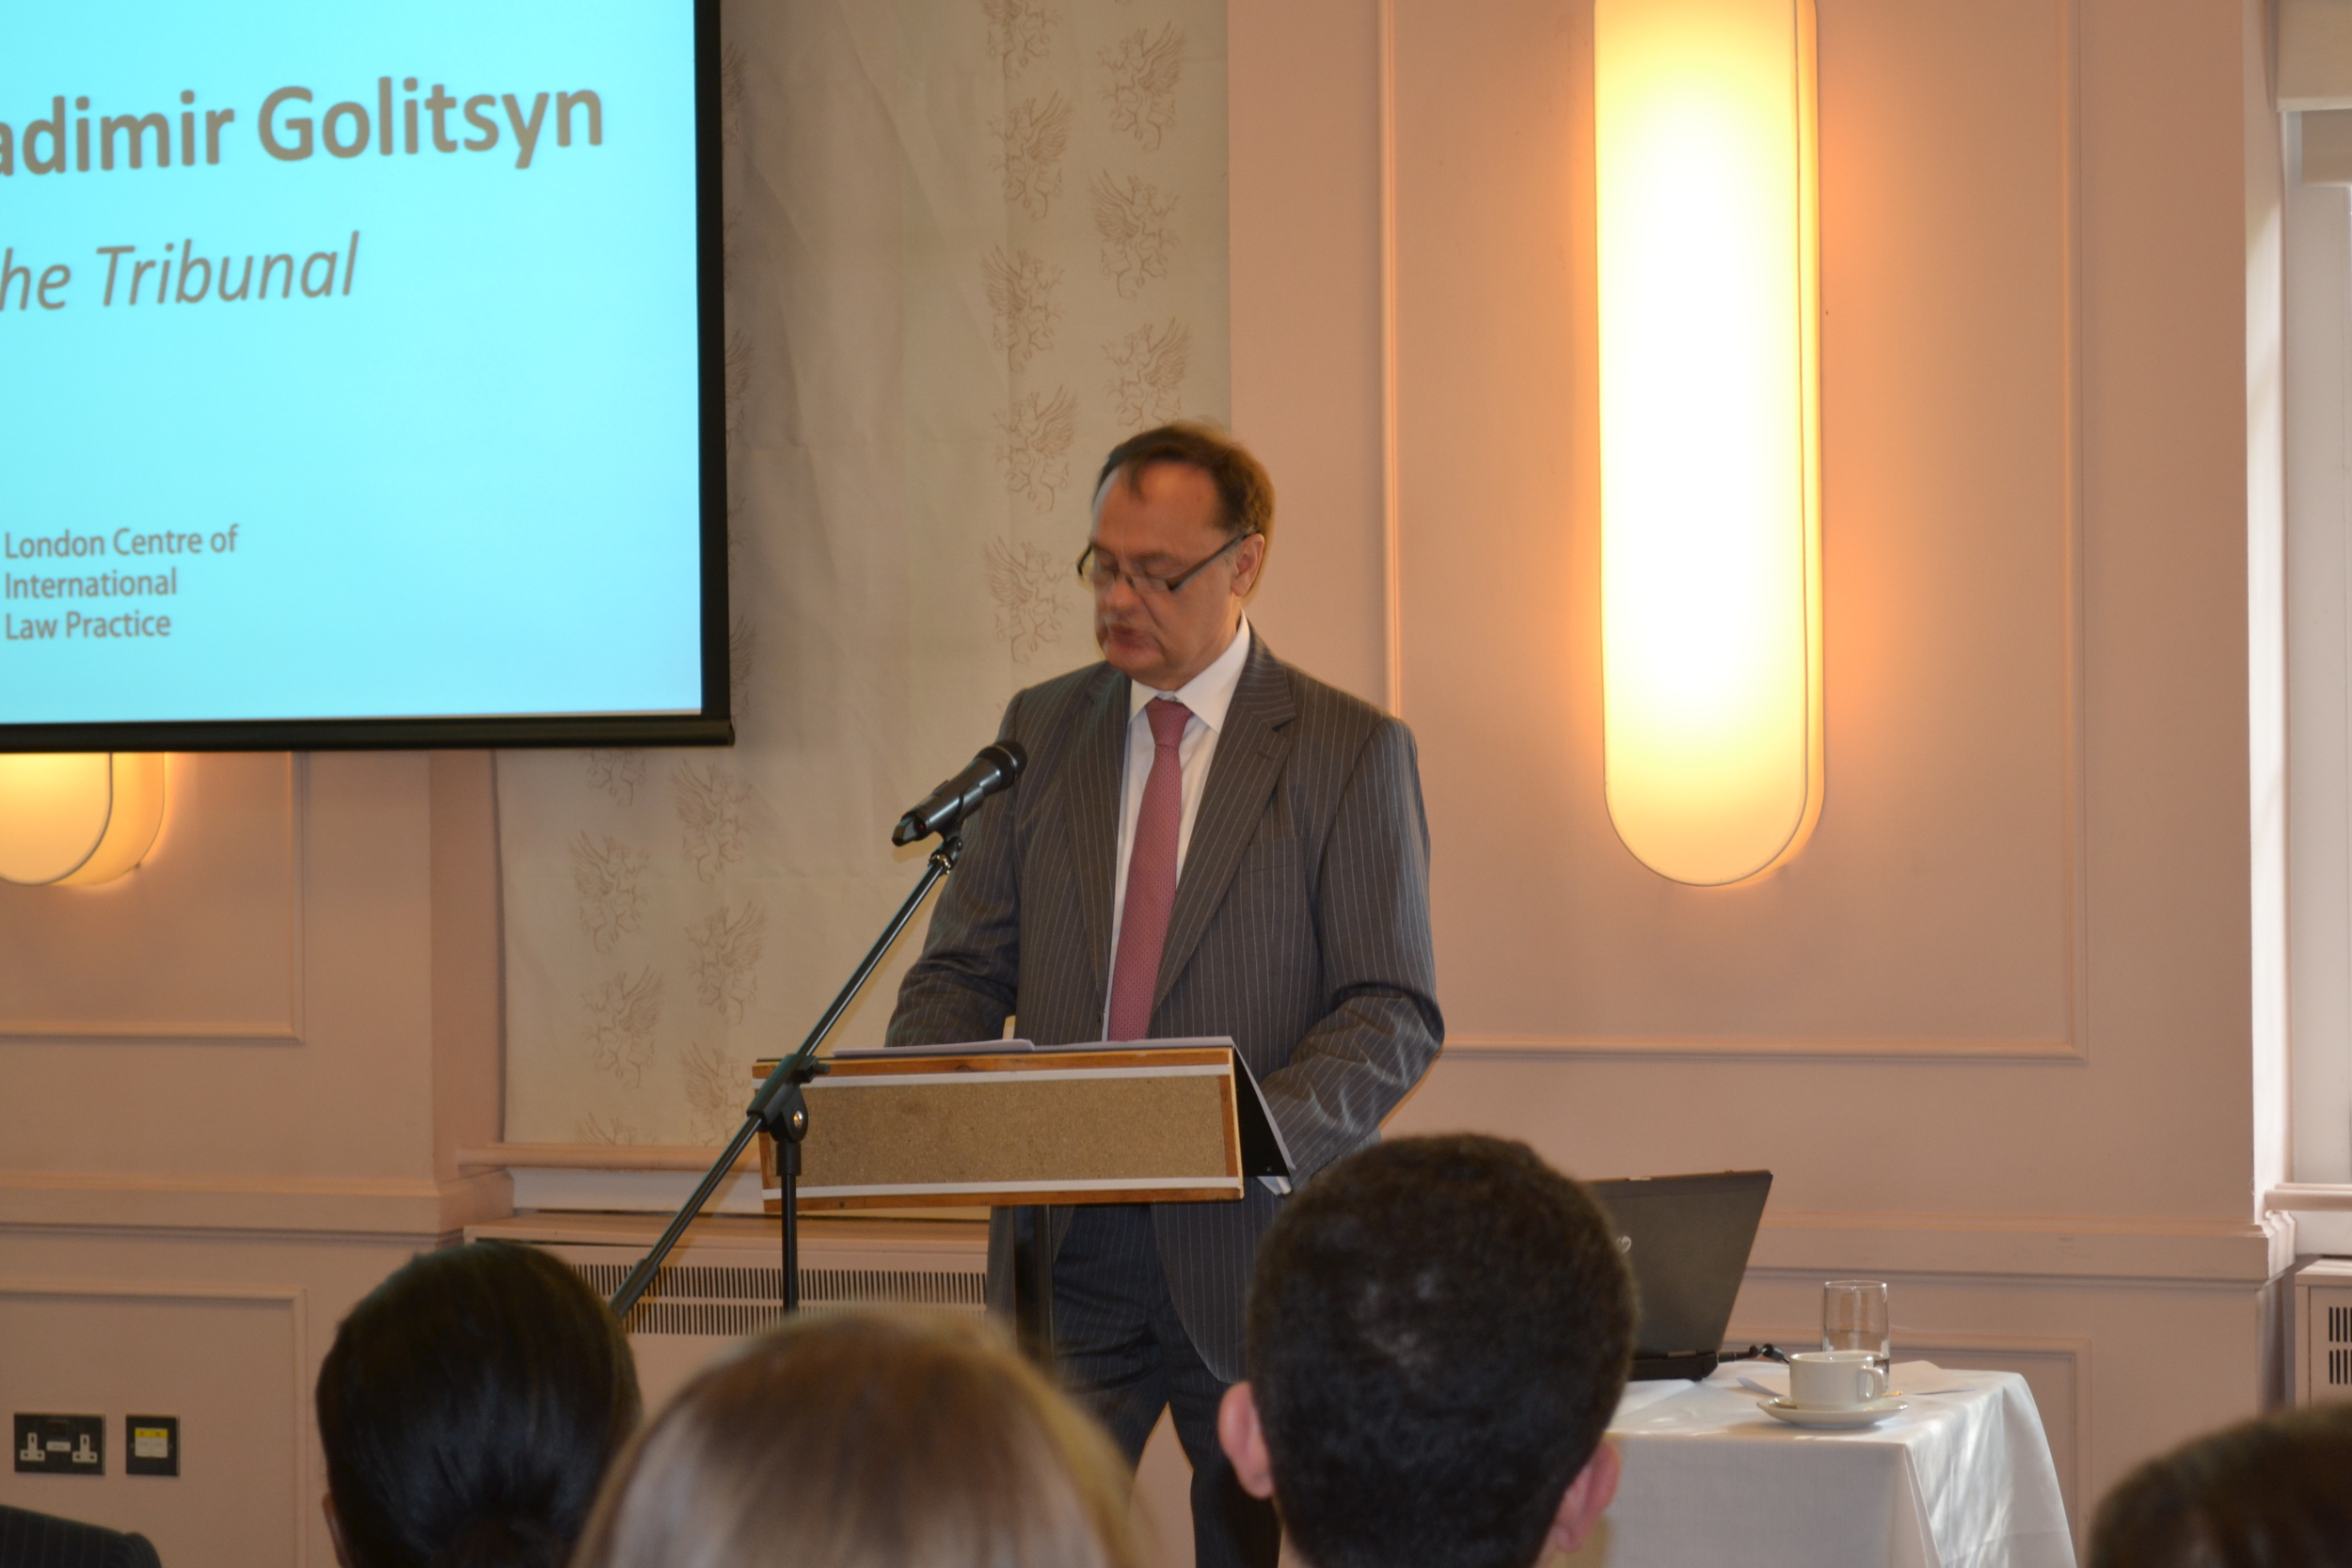 H.e. Judge Vladimir Golitsyn, President of the International Tribunal for the Law of the Sea.